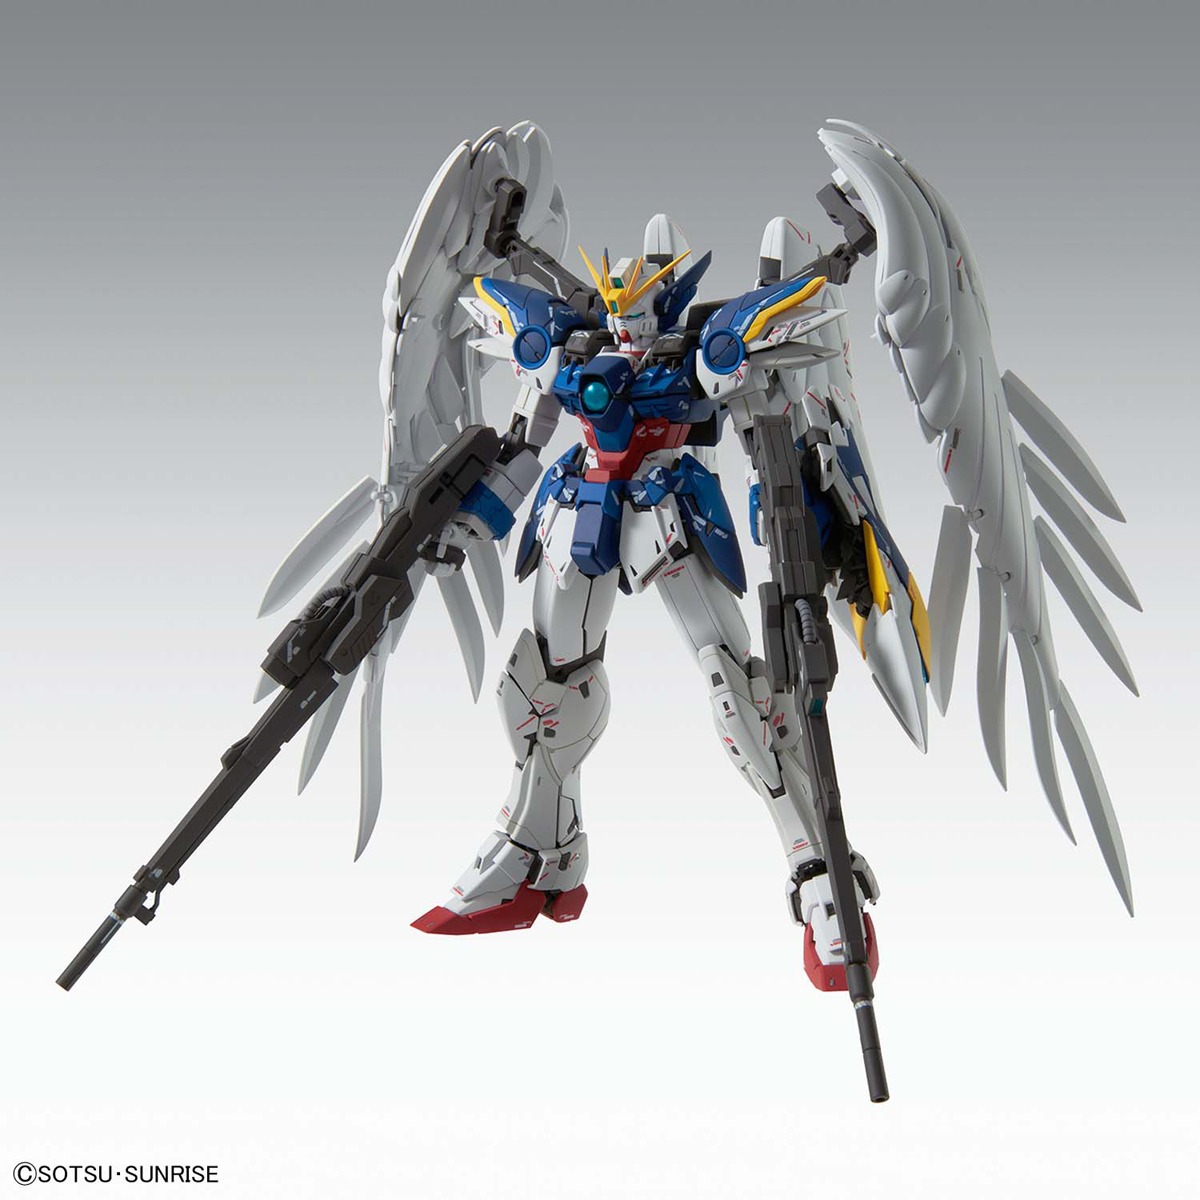 Mg 1 100 Wing Gundam Zero Ew Ver Ka Release Info Box Art And Official Images Gundam Kits Collection News And Reviews